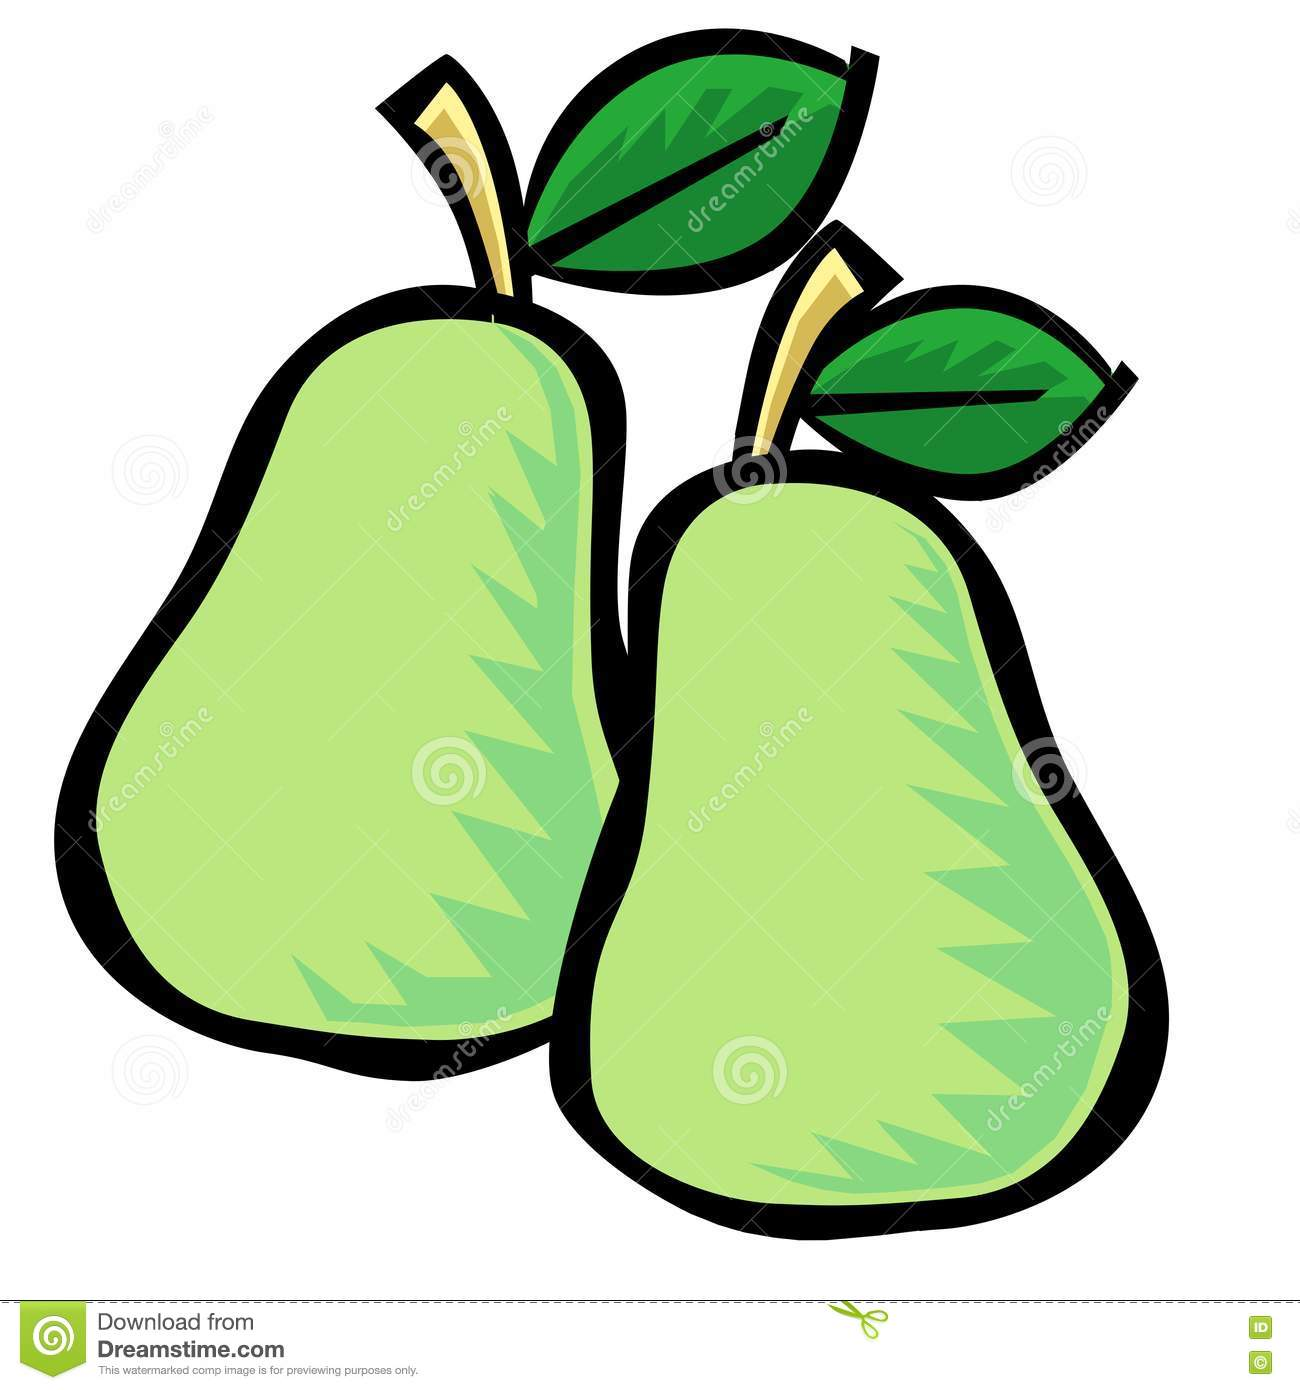 Go Back > Images For > Pear Clipart